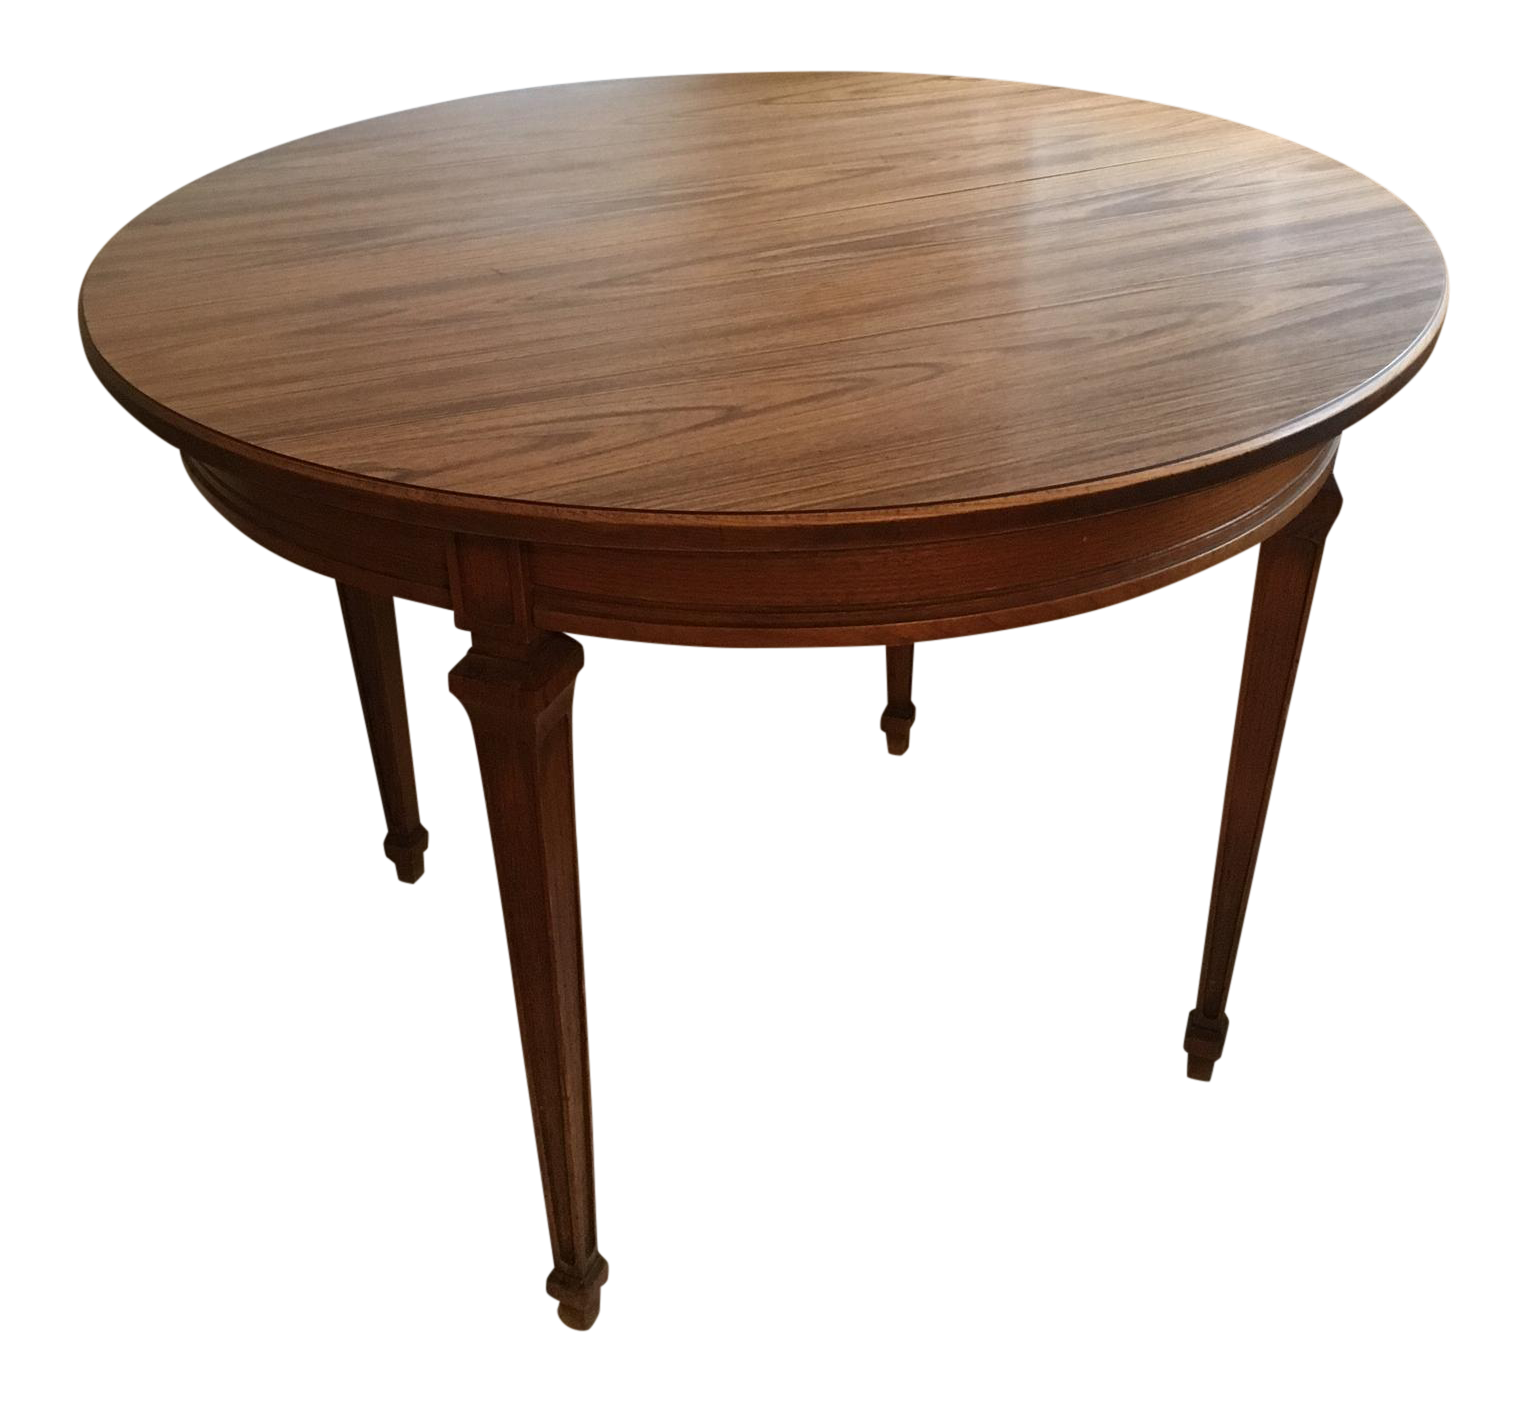 Antique Round Expandable Dining Table Chairish : 636acc04 378d 4147 81b4 fe647fad553aaspectfitampwidth640ampheight640 from www.chairish.com size 640 x 640 jpeg 30kB